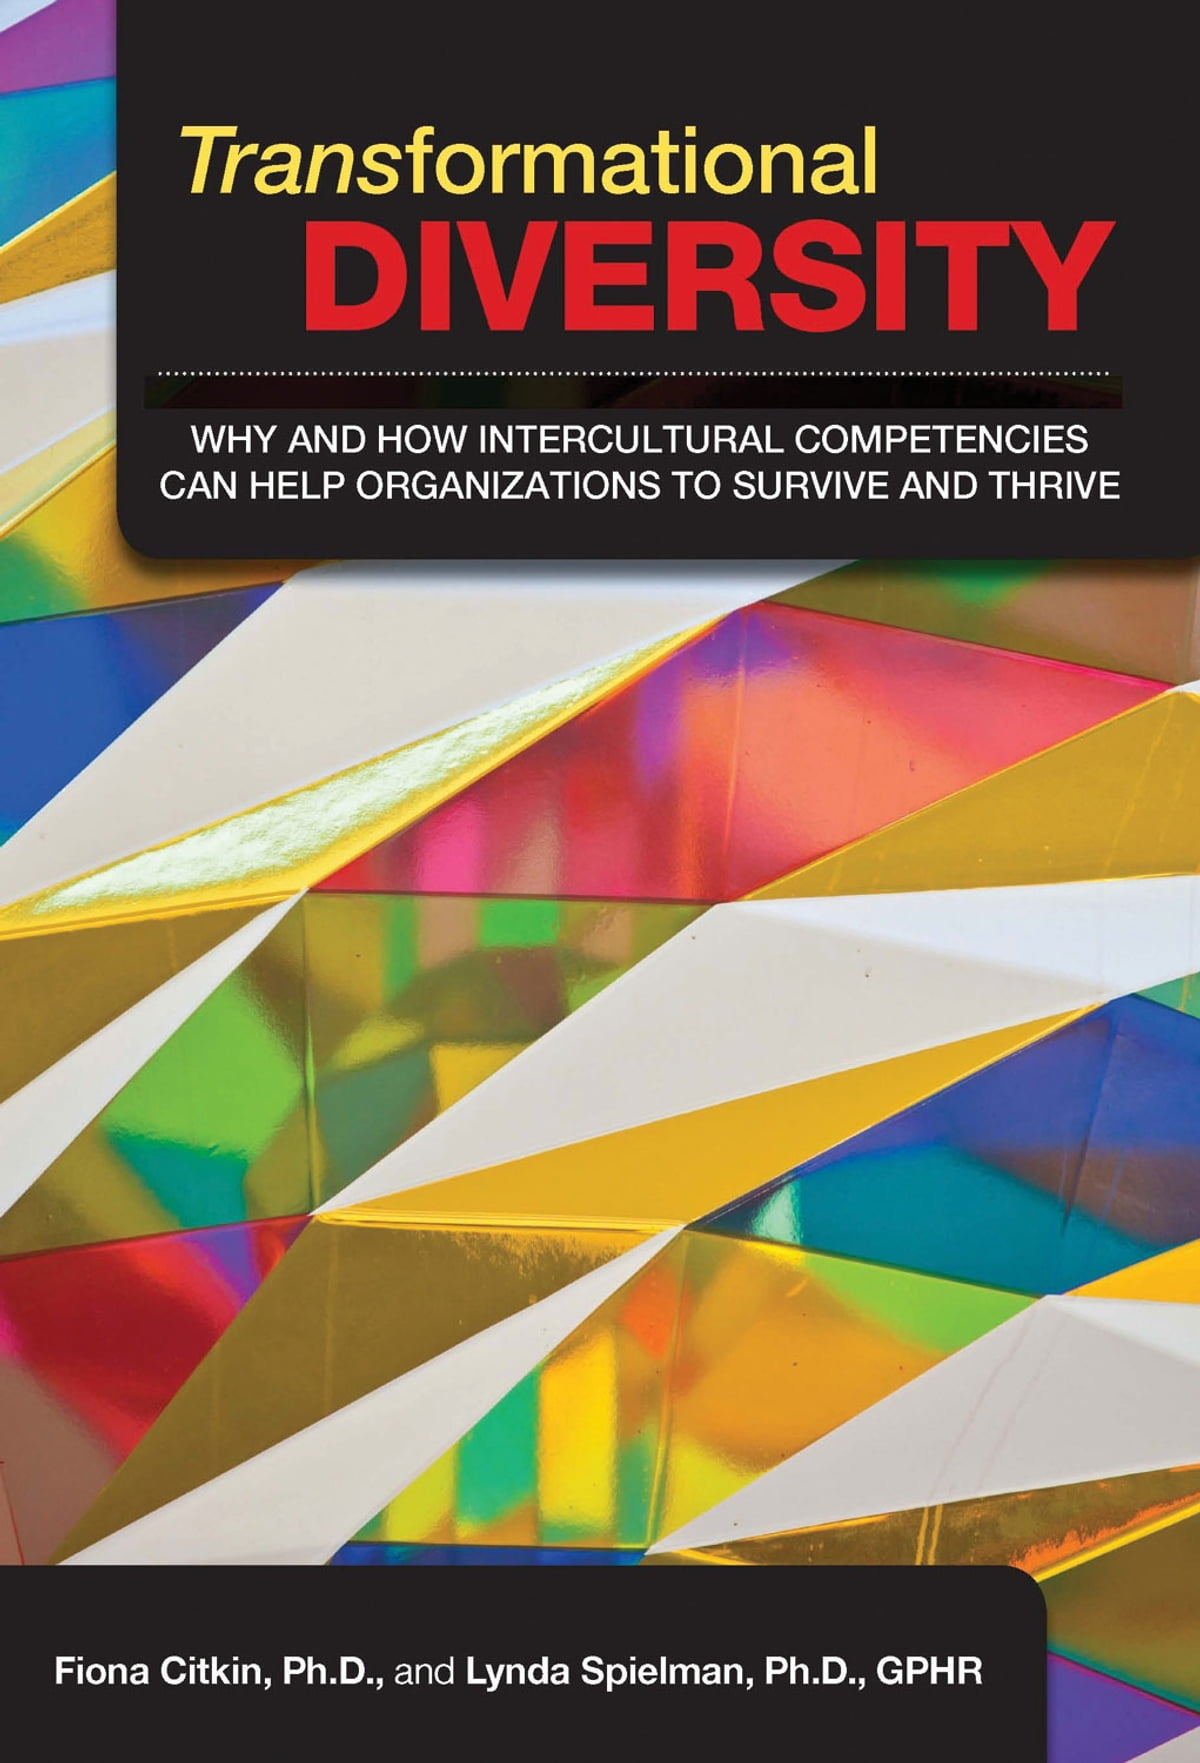 transformational diversity why and how intercultural competencies transformational diversity why and how intercultural competencies can help organizations to survive and thrive ebook by fiona citkin 9781586442927 kobo